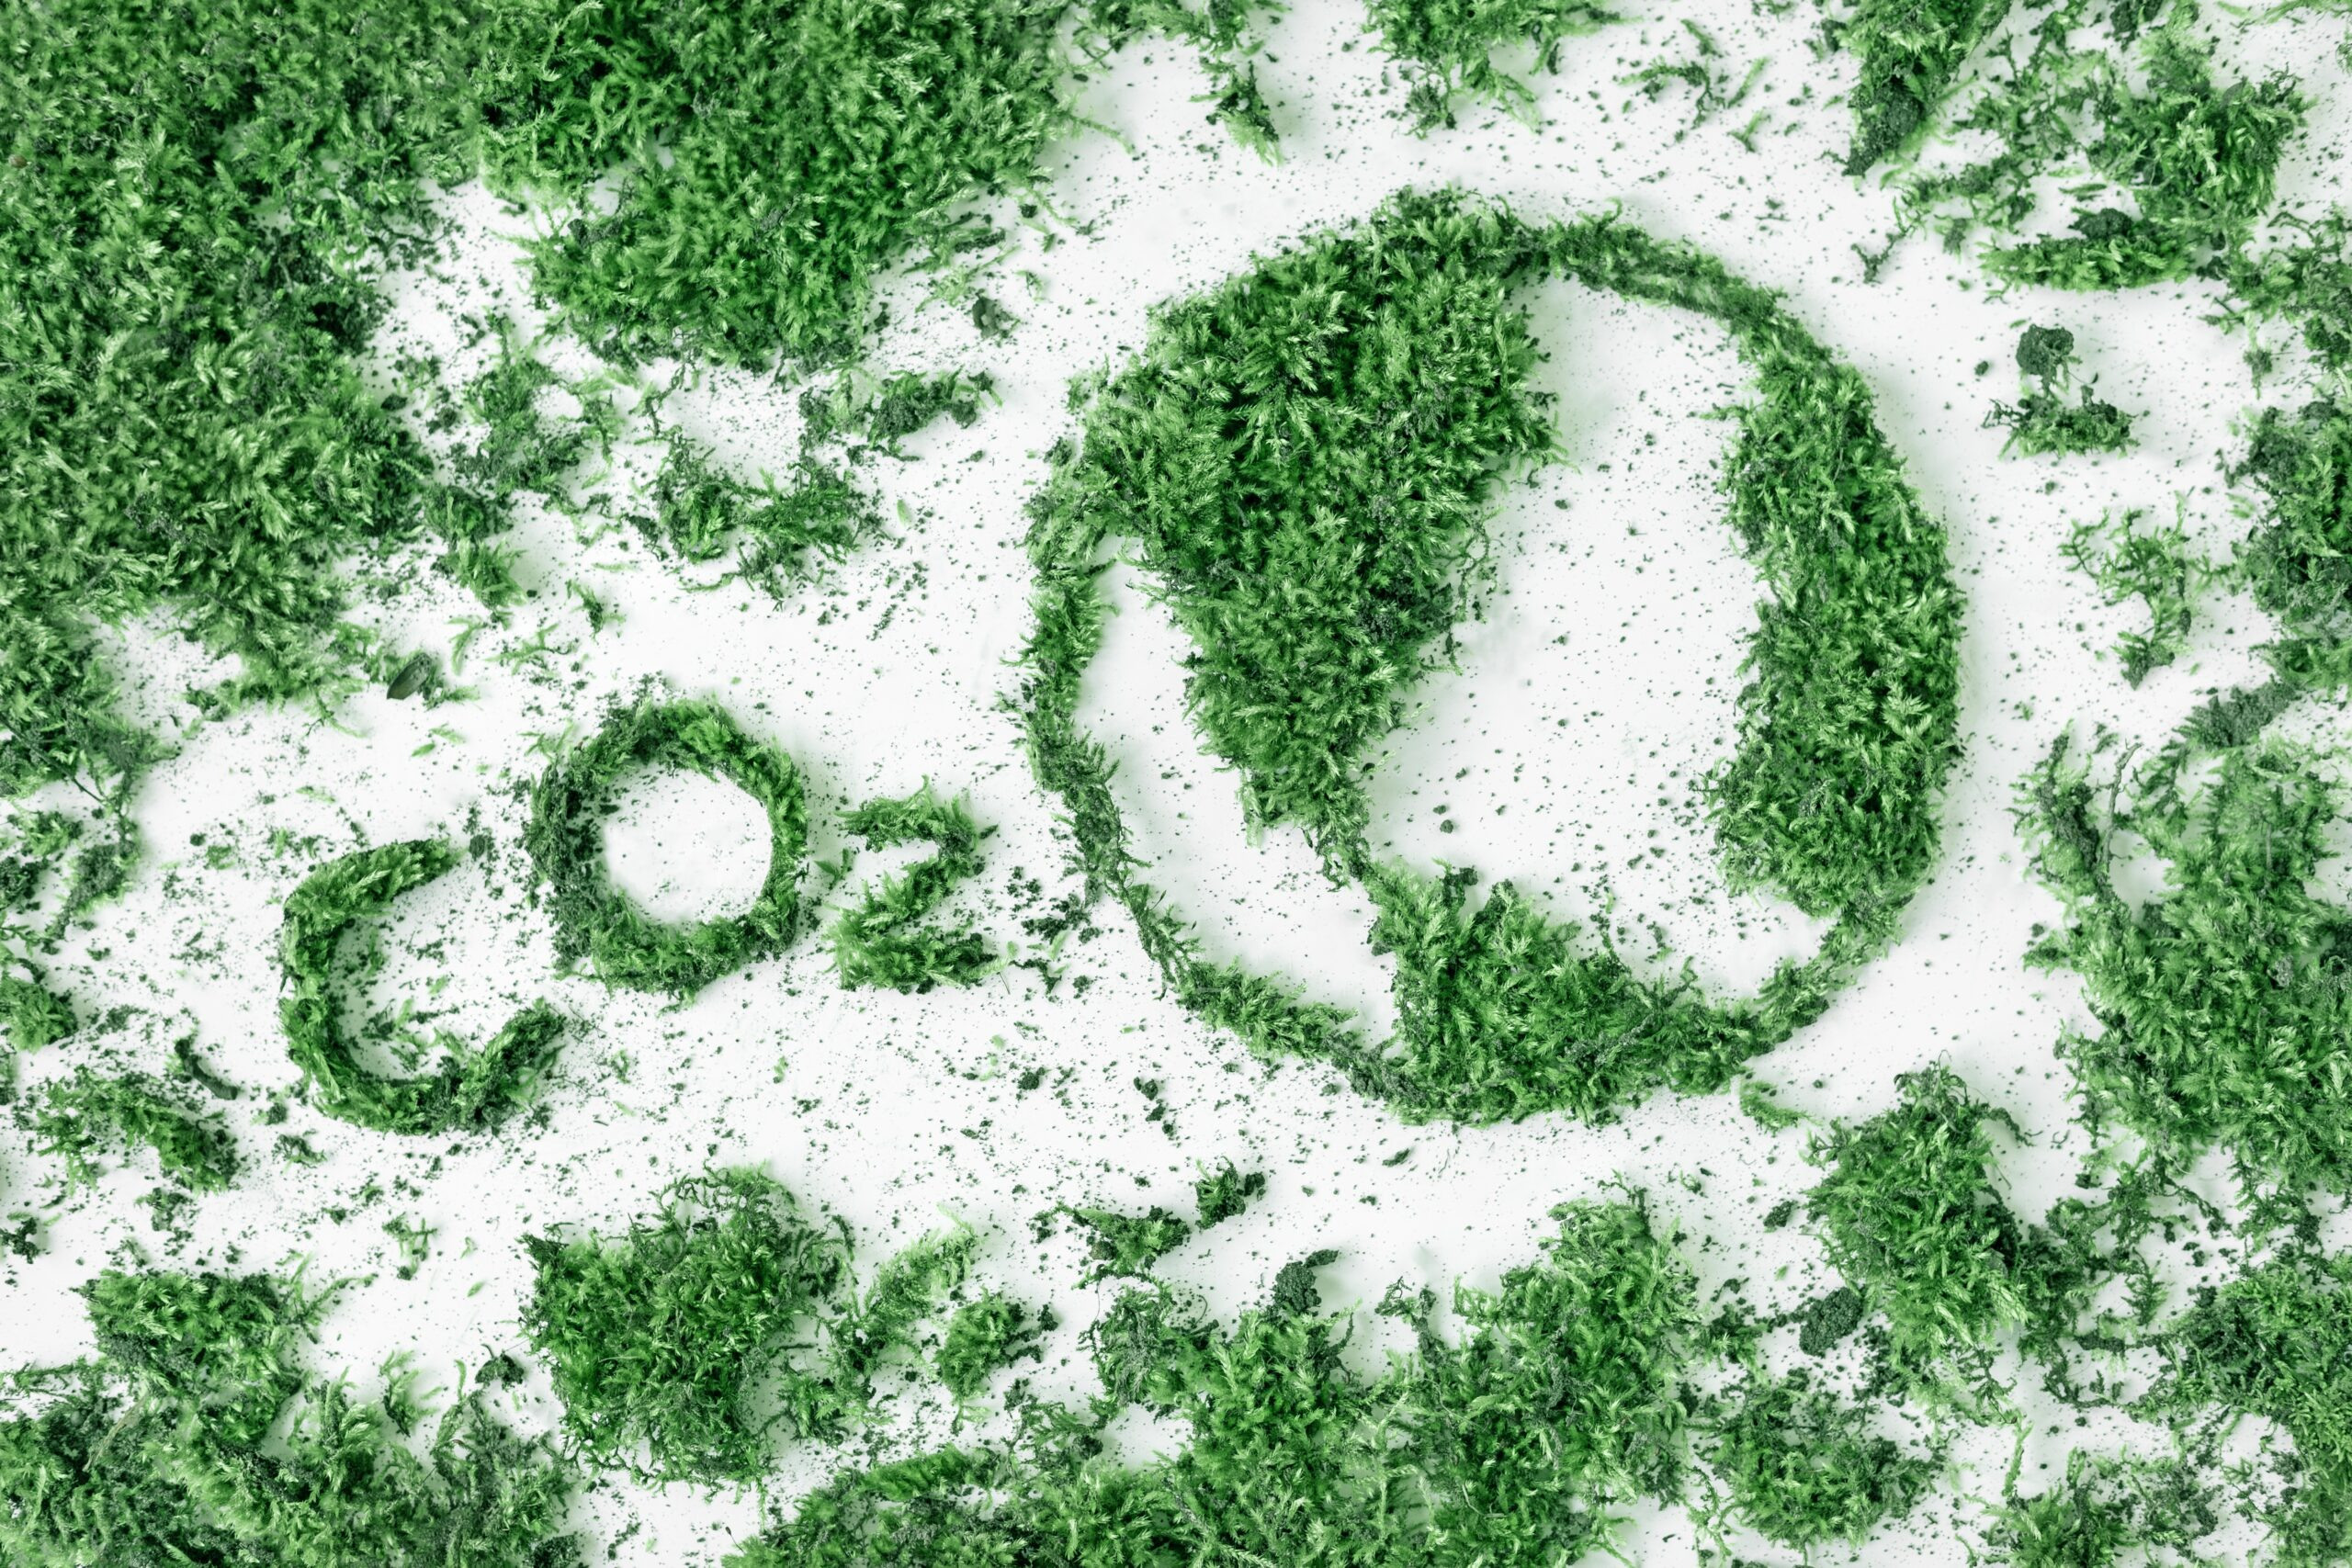 lettering co2 and drawing planet earth from grass and moss the concept of ecology air pollution and t20 b64Xbg - Robot-Clean der biologische, universelle Duft Reiniger(Sandelholz) - gebrauchsfertig